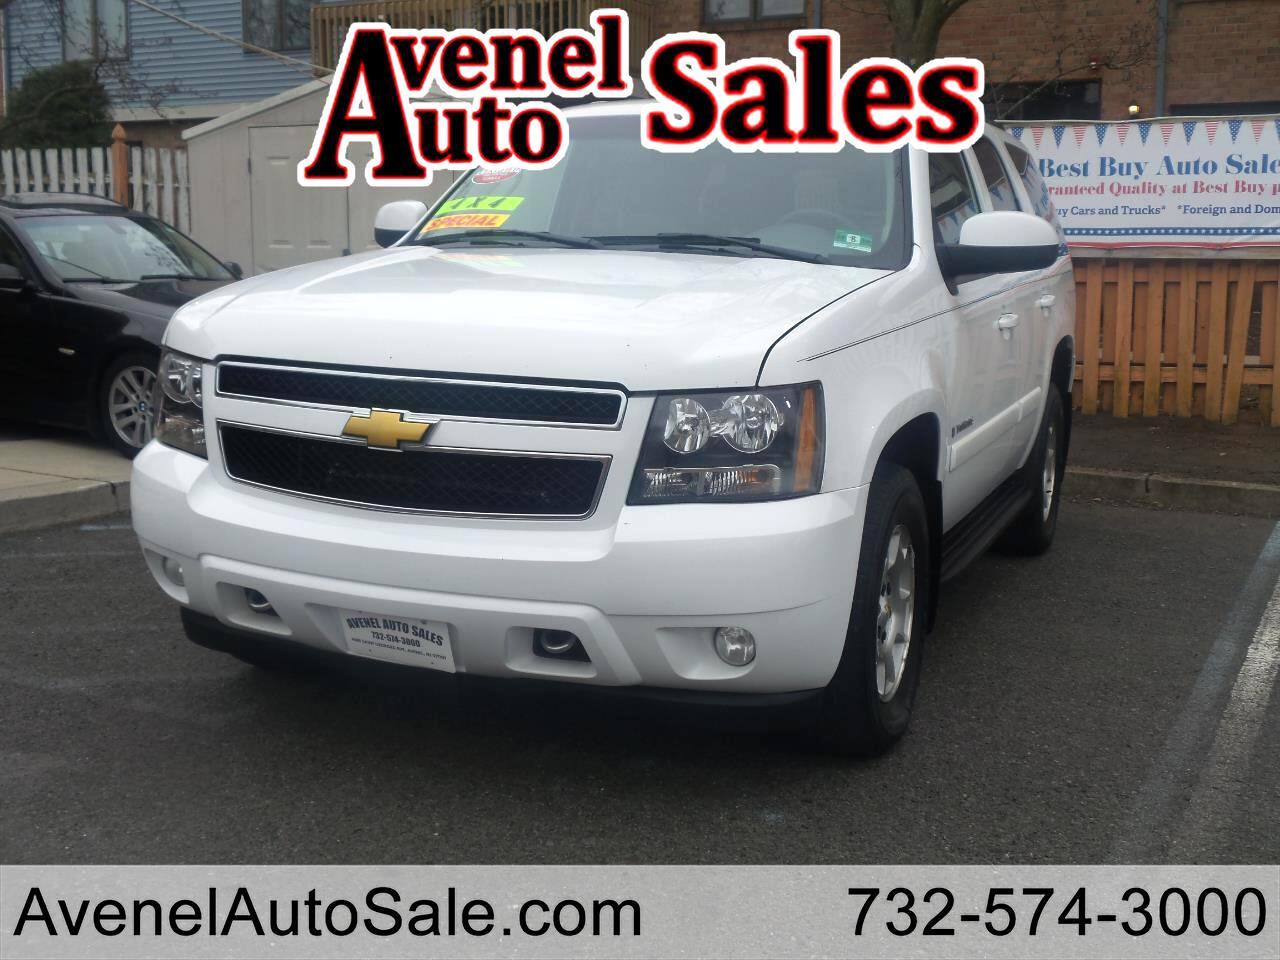 Used Cars For Sale Avenel Nj 07001 Avenel Auto Sales